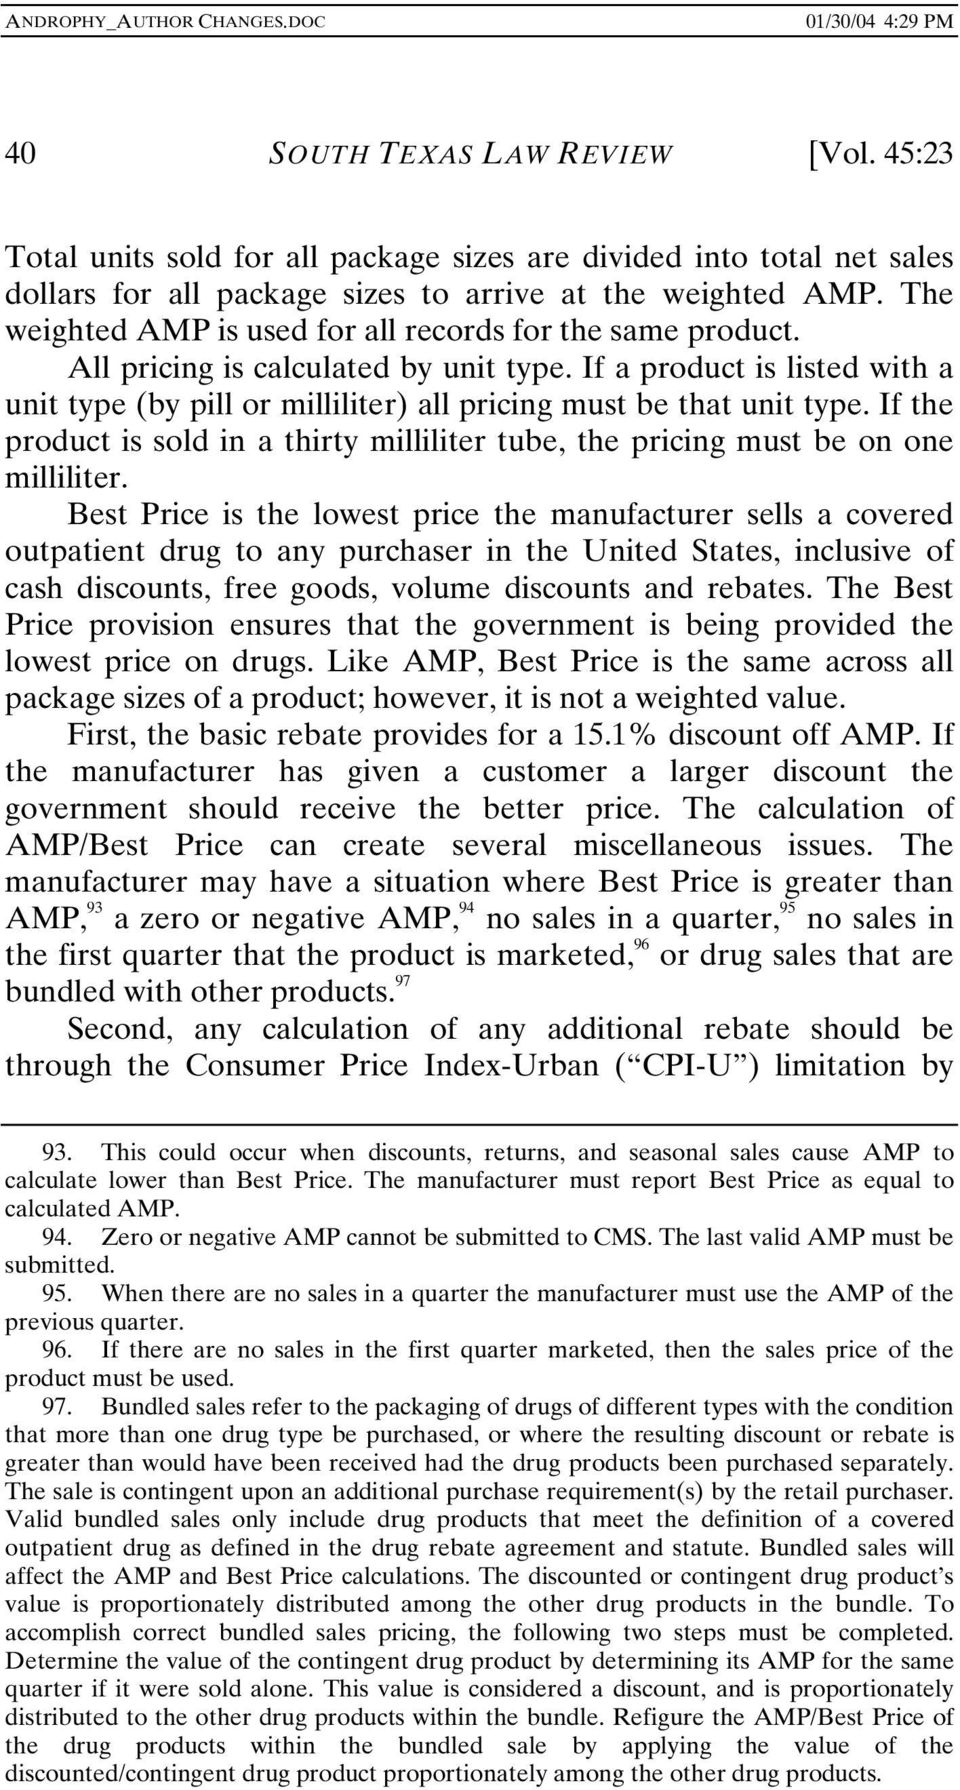 If a product is listed with a unit type (by pill or milliliter) all pricing must be that unit type. If the product is sold in a thirty milliliter tube, the pricing must be on one milliliter.